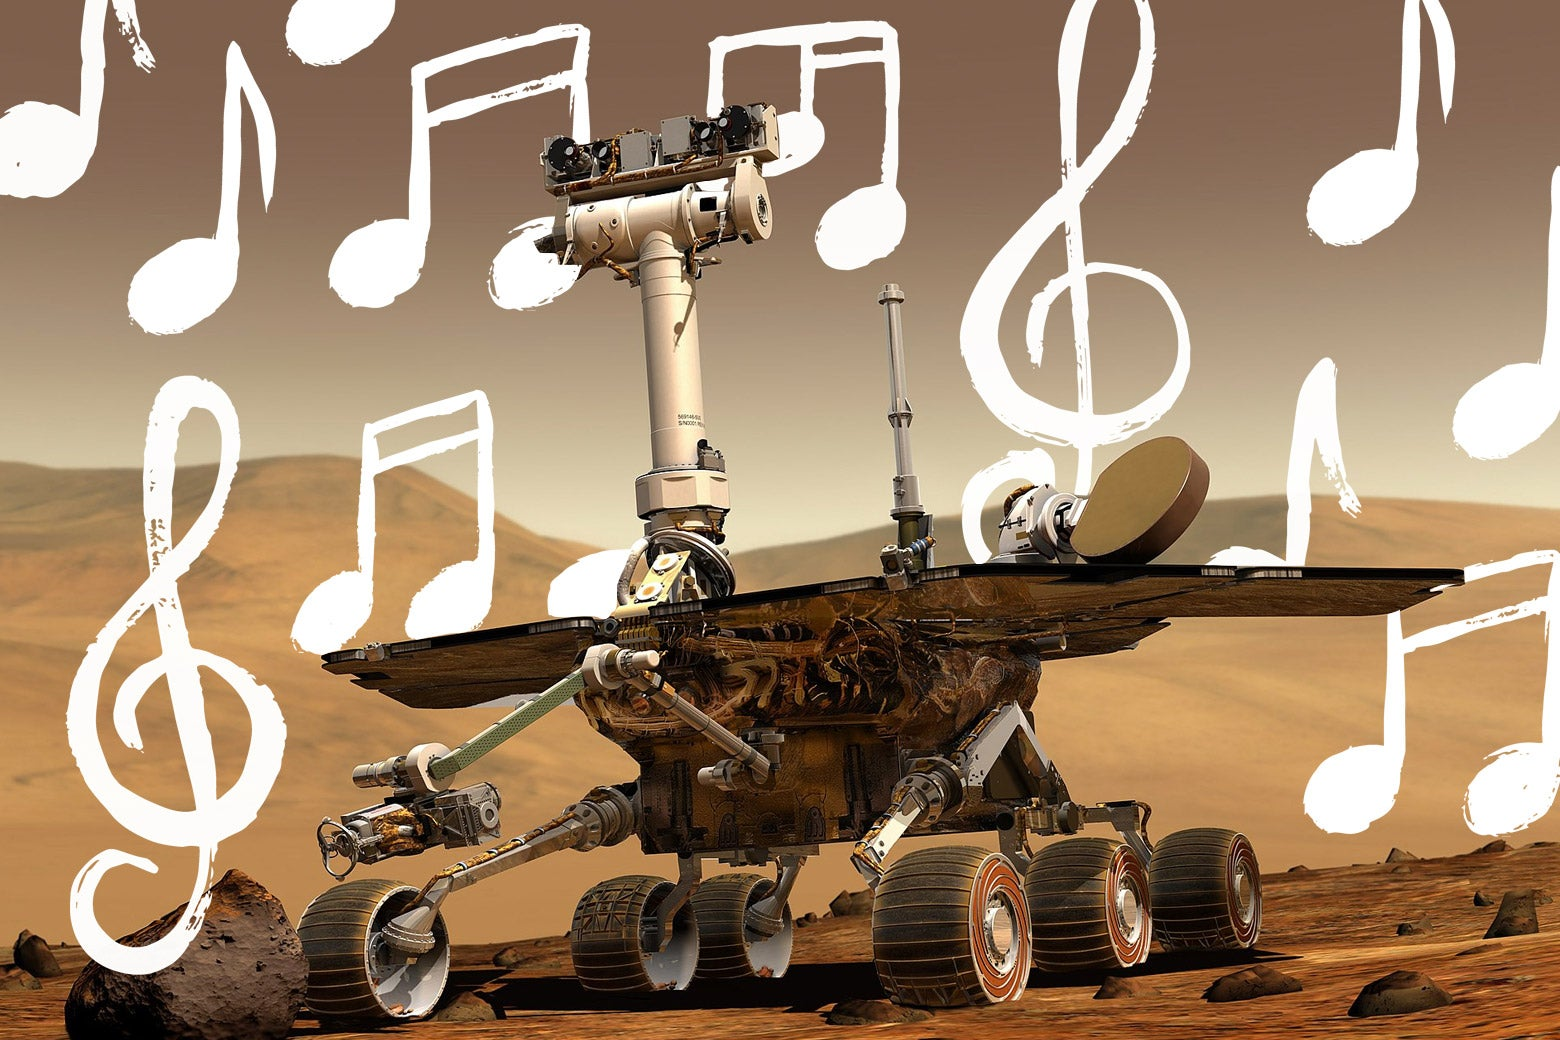 The Mars rover surrounded by musical notes.